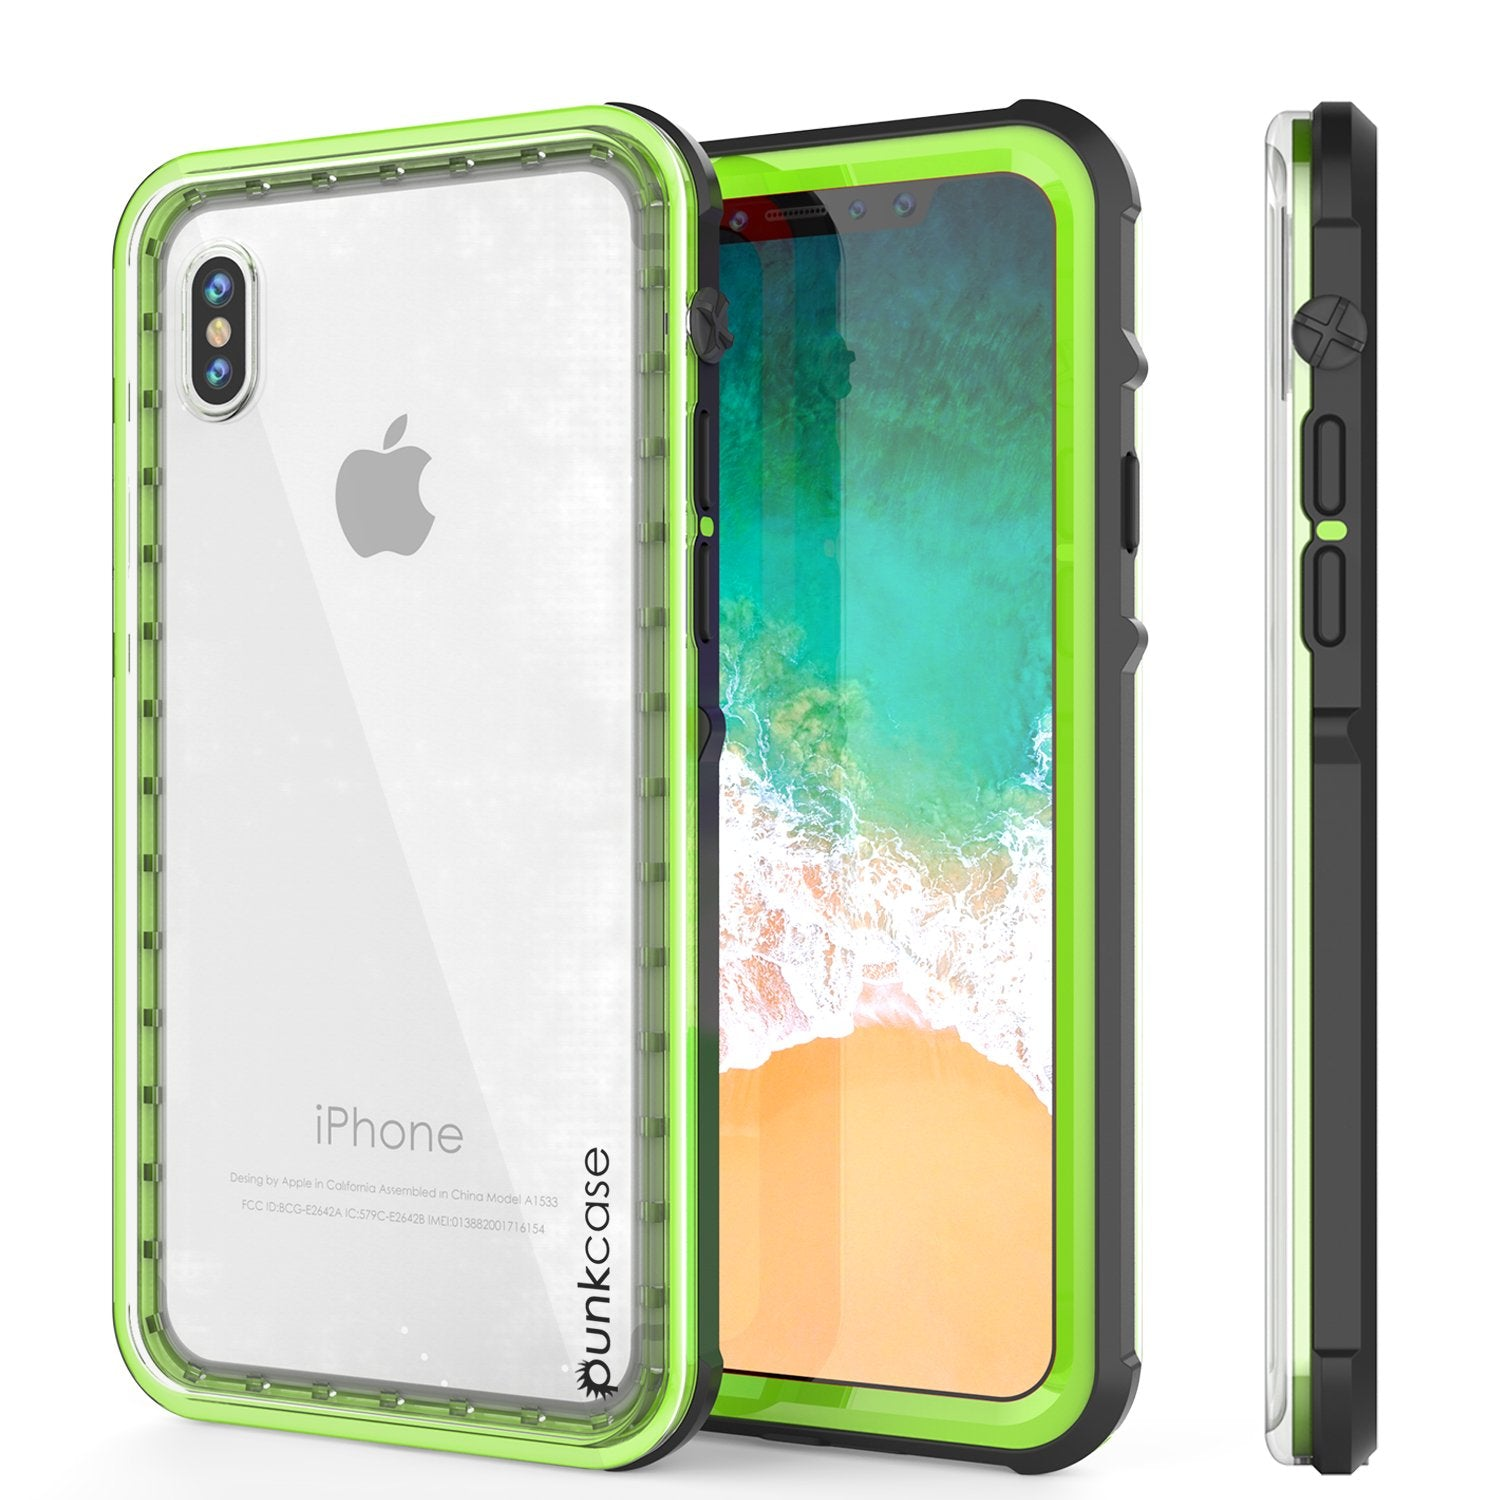 iPhone X Case, PUNKCase [CRYSTAL SERIES] Protective IP68 Certified Cover W/ Attached Screen Protector - DustPROOF, ShockPROOF, SnowPROOF - Ultra Slim Fit for Apple iPhone 10 [LIGHT GREEN]